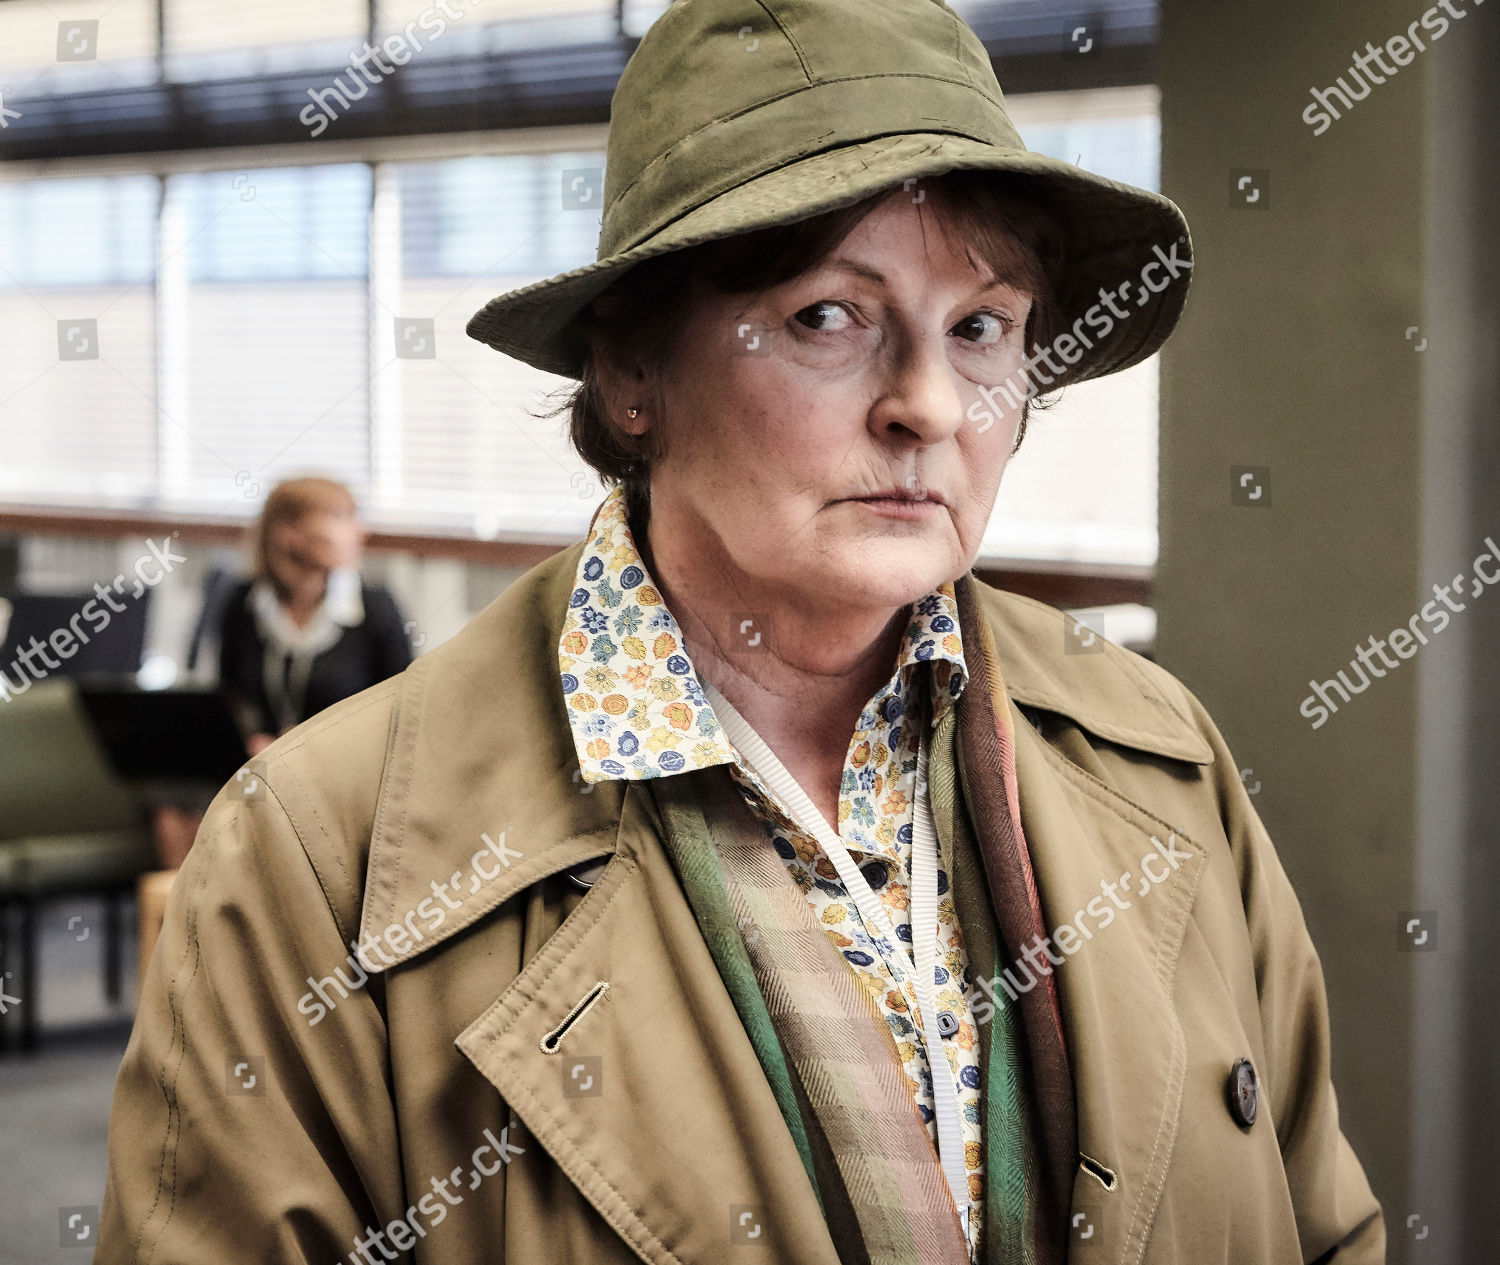 Brenda Blethyn DCI Vera Stanhope Editorial Stock Photo